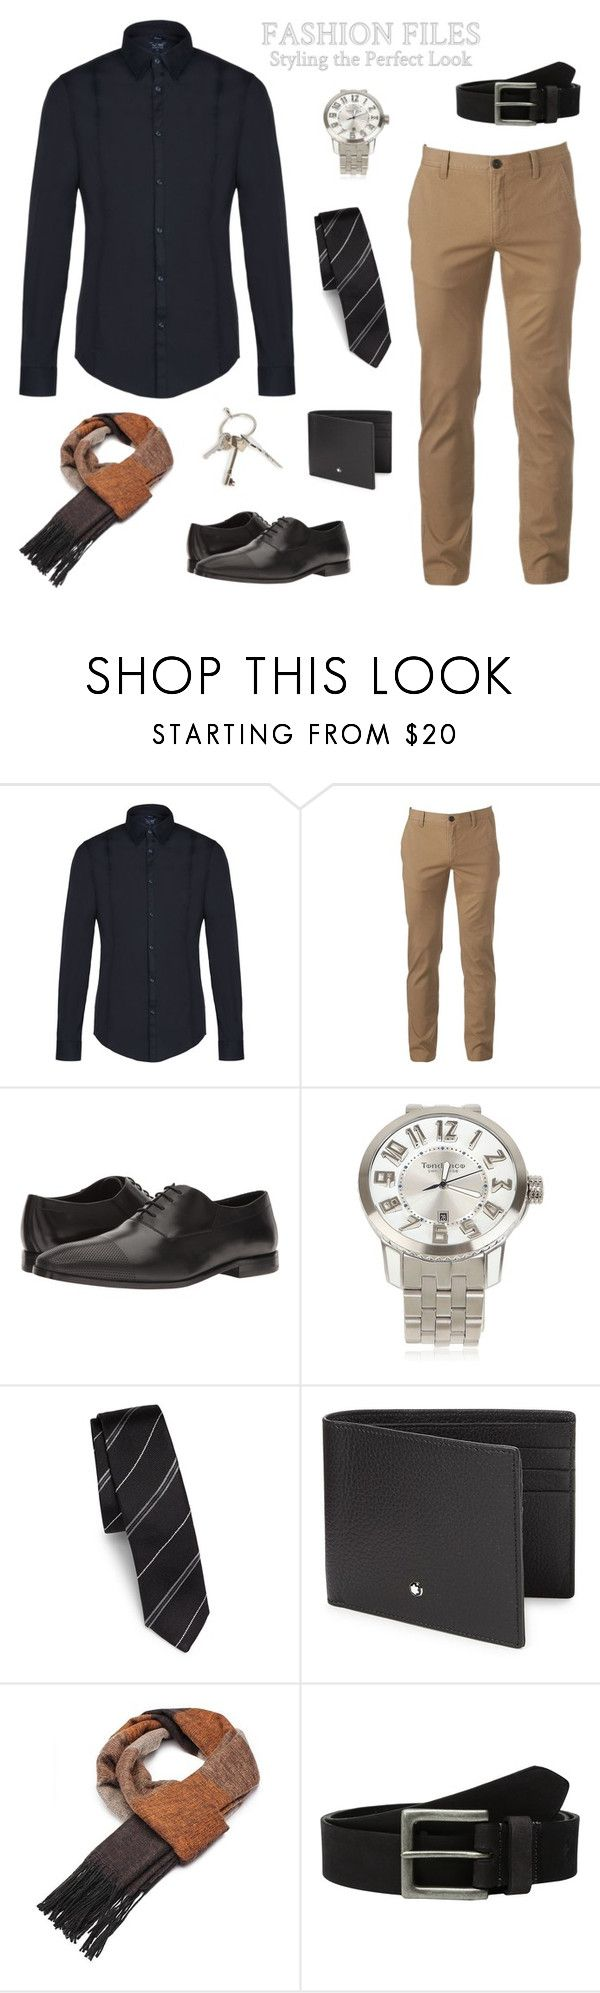 """""""New Contest - My Group"""" by deepwinter ❤ liked on Polyvore featuring Armani Jeans, Urban Pipeline, BOSS Hugo Boss, Tendence, Dolce&Gabbana, Montblanc, Timberland, Givenchy, men's fashion and menswear"""